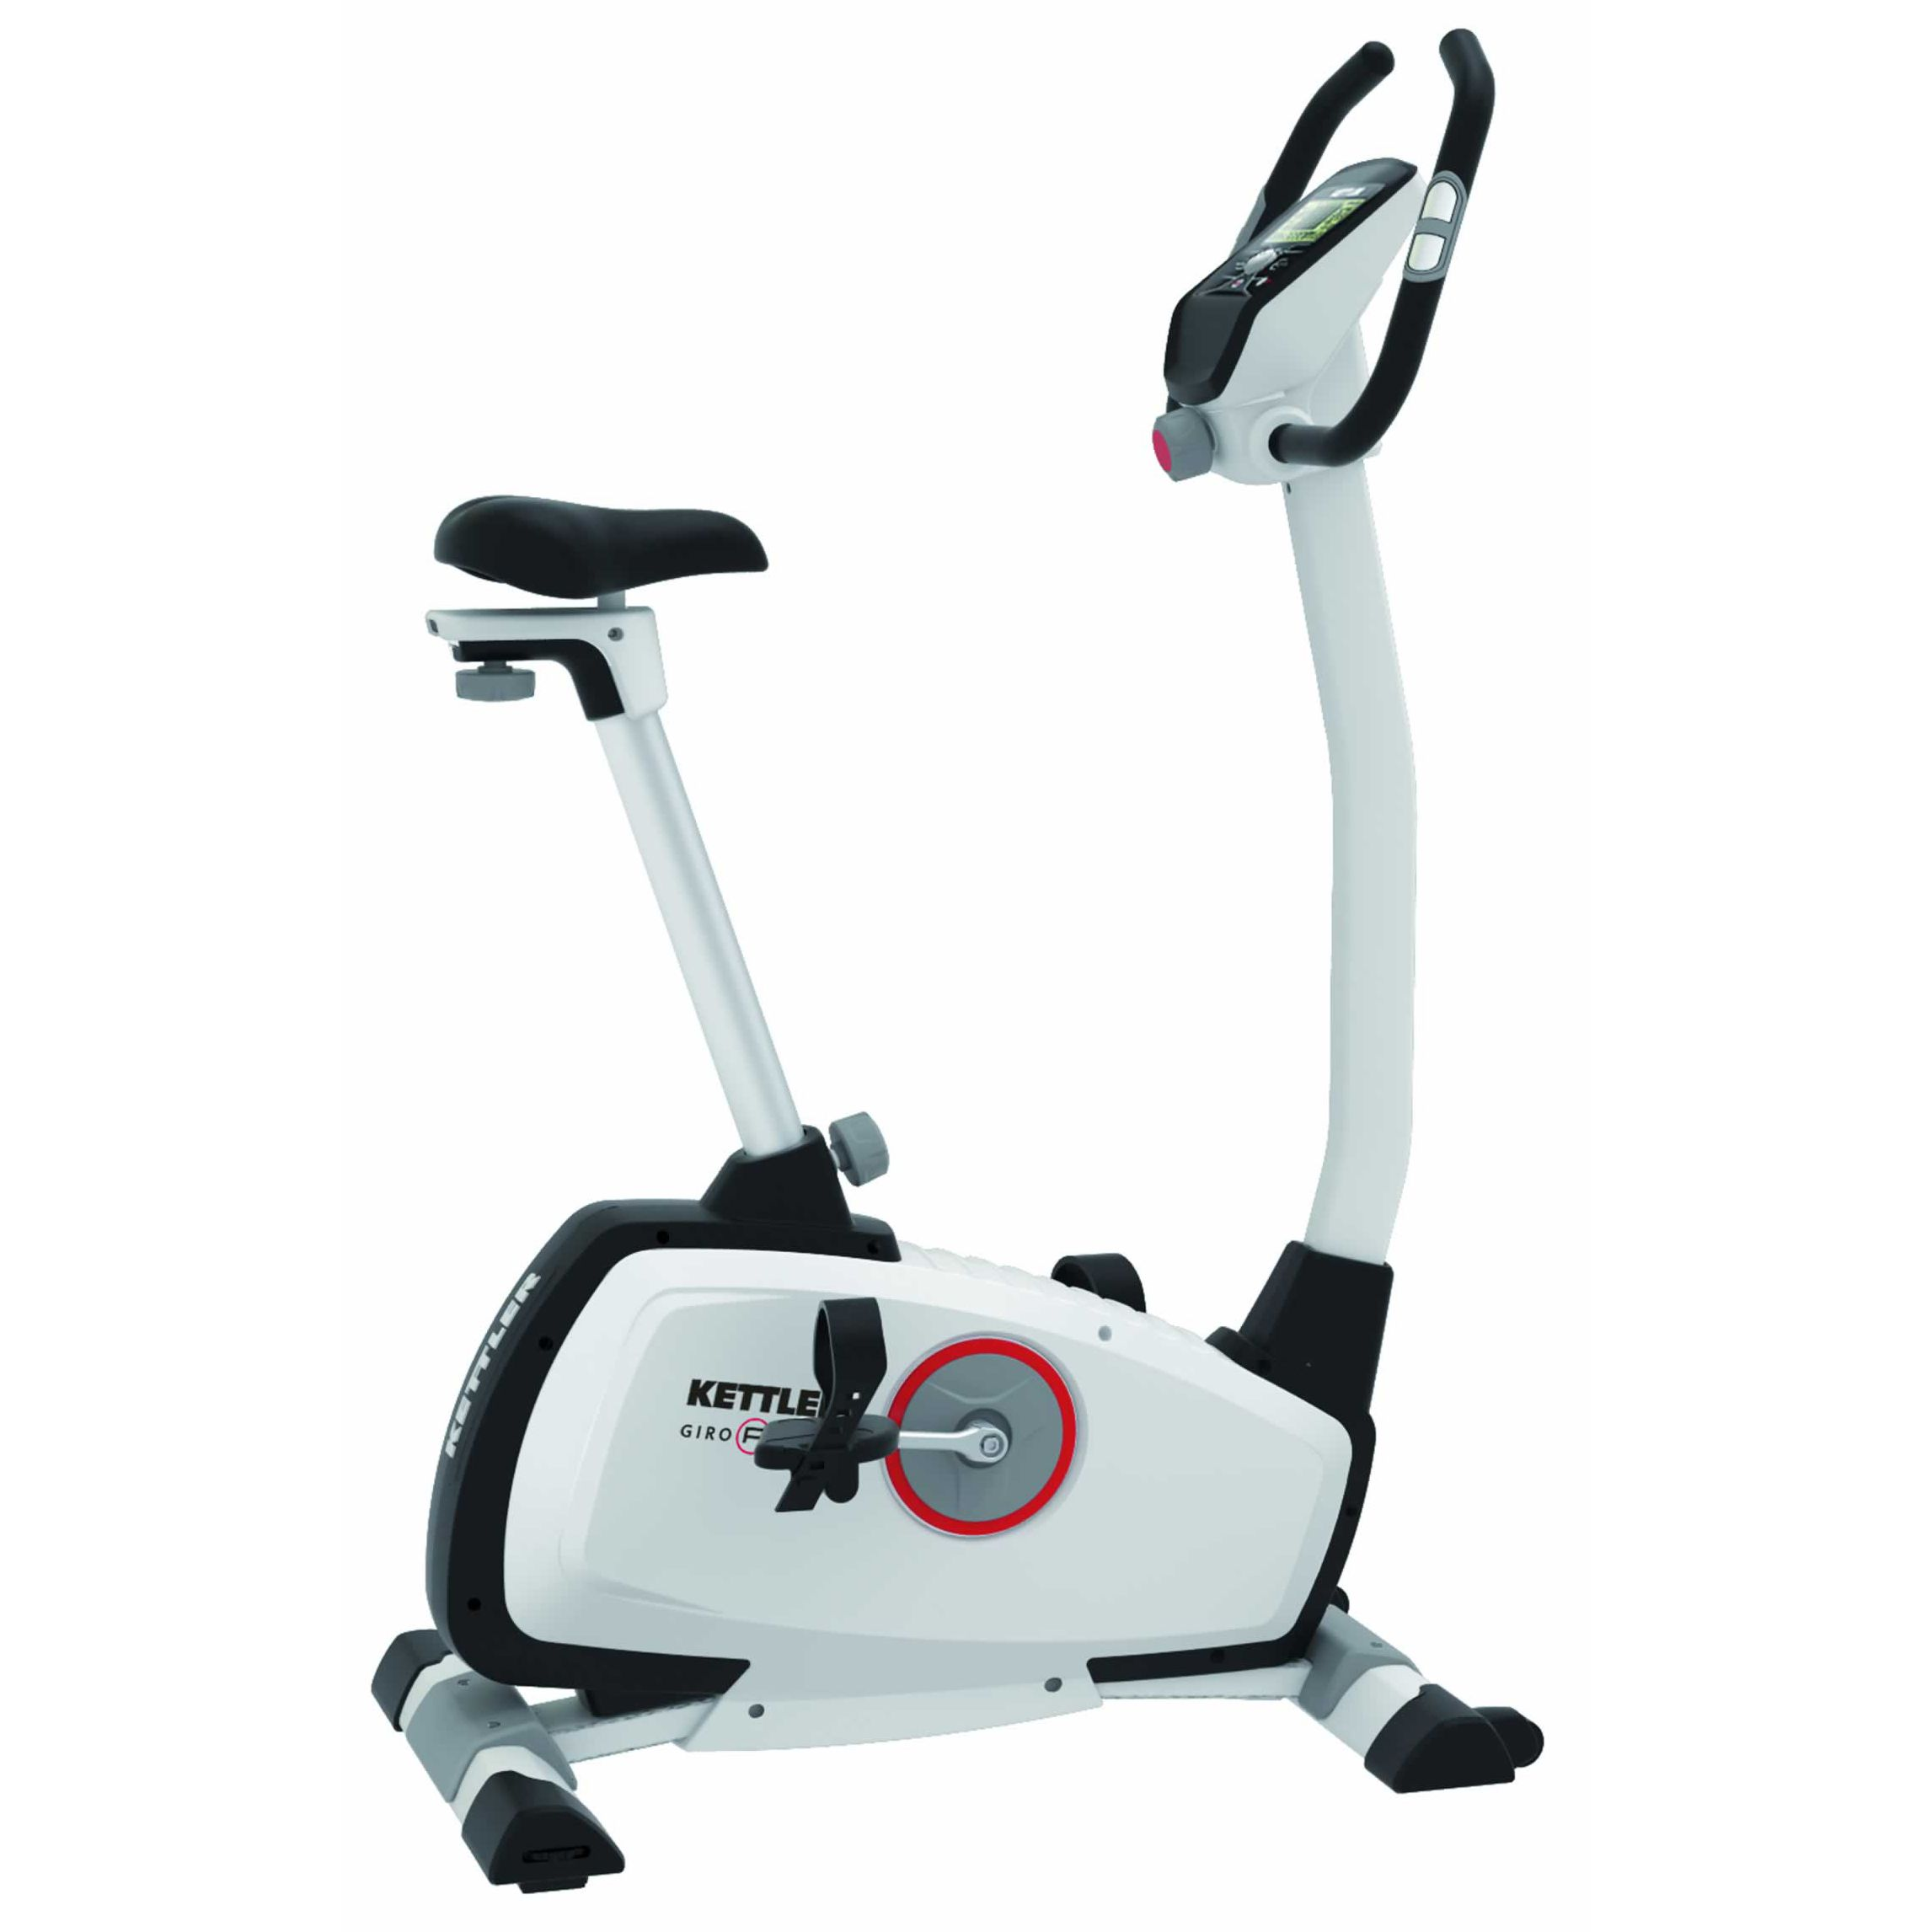 kettler giro p exercise bike compare prices at foundem. Black Bedroom Furniture Sets. Home Design Ideas